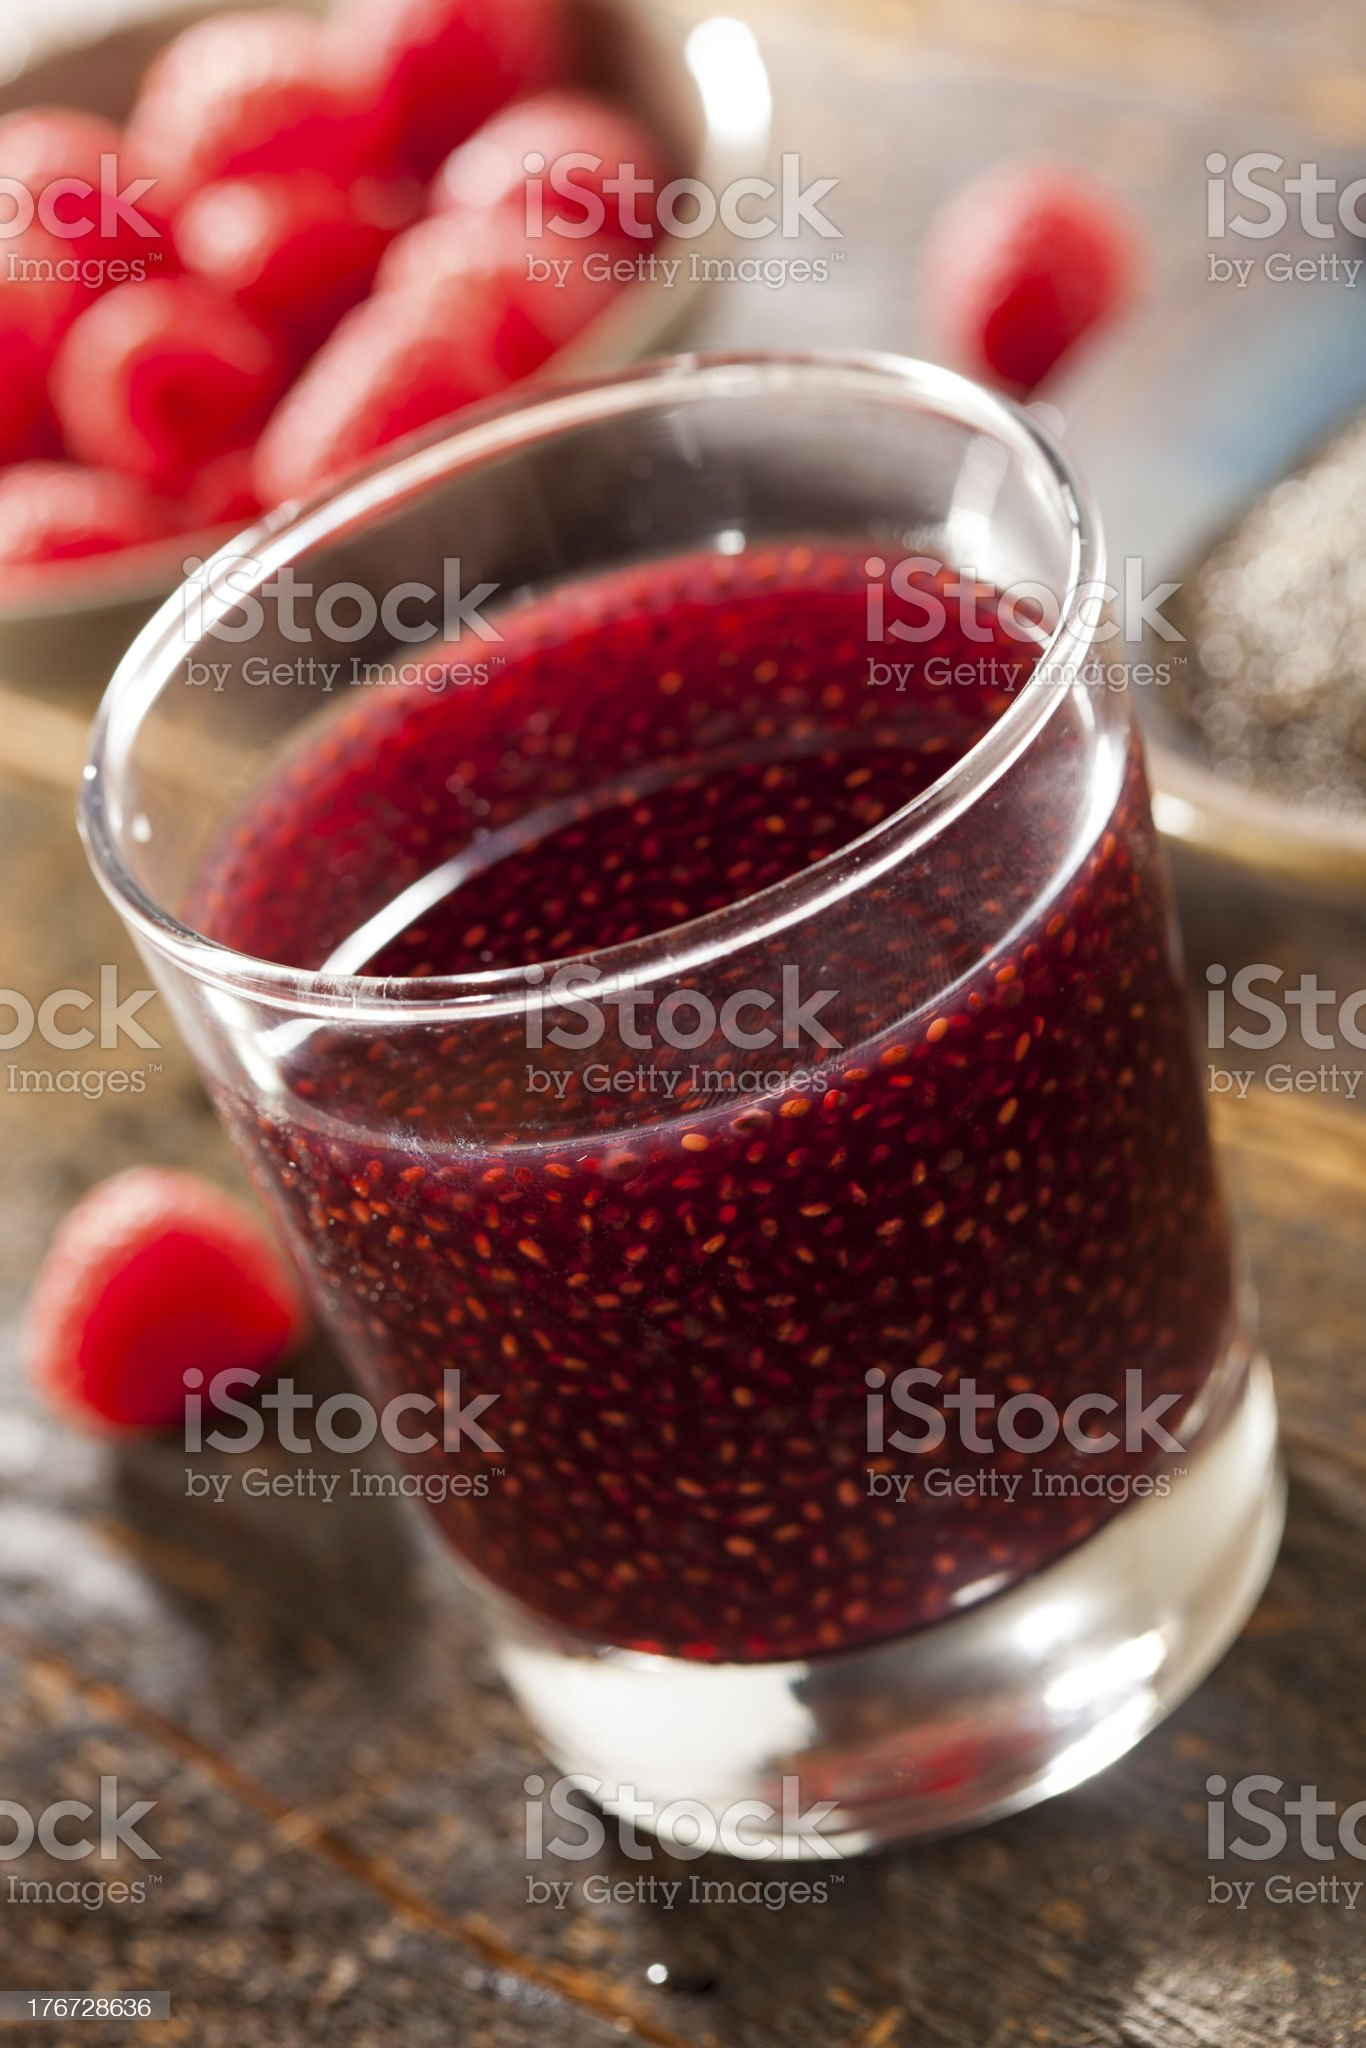 Raspberry and Chia Seed Beverage royalty-free stock photo